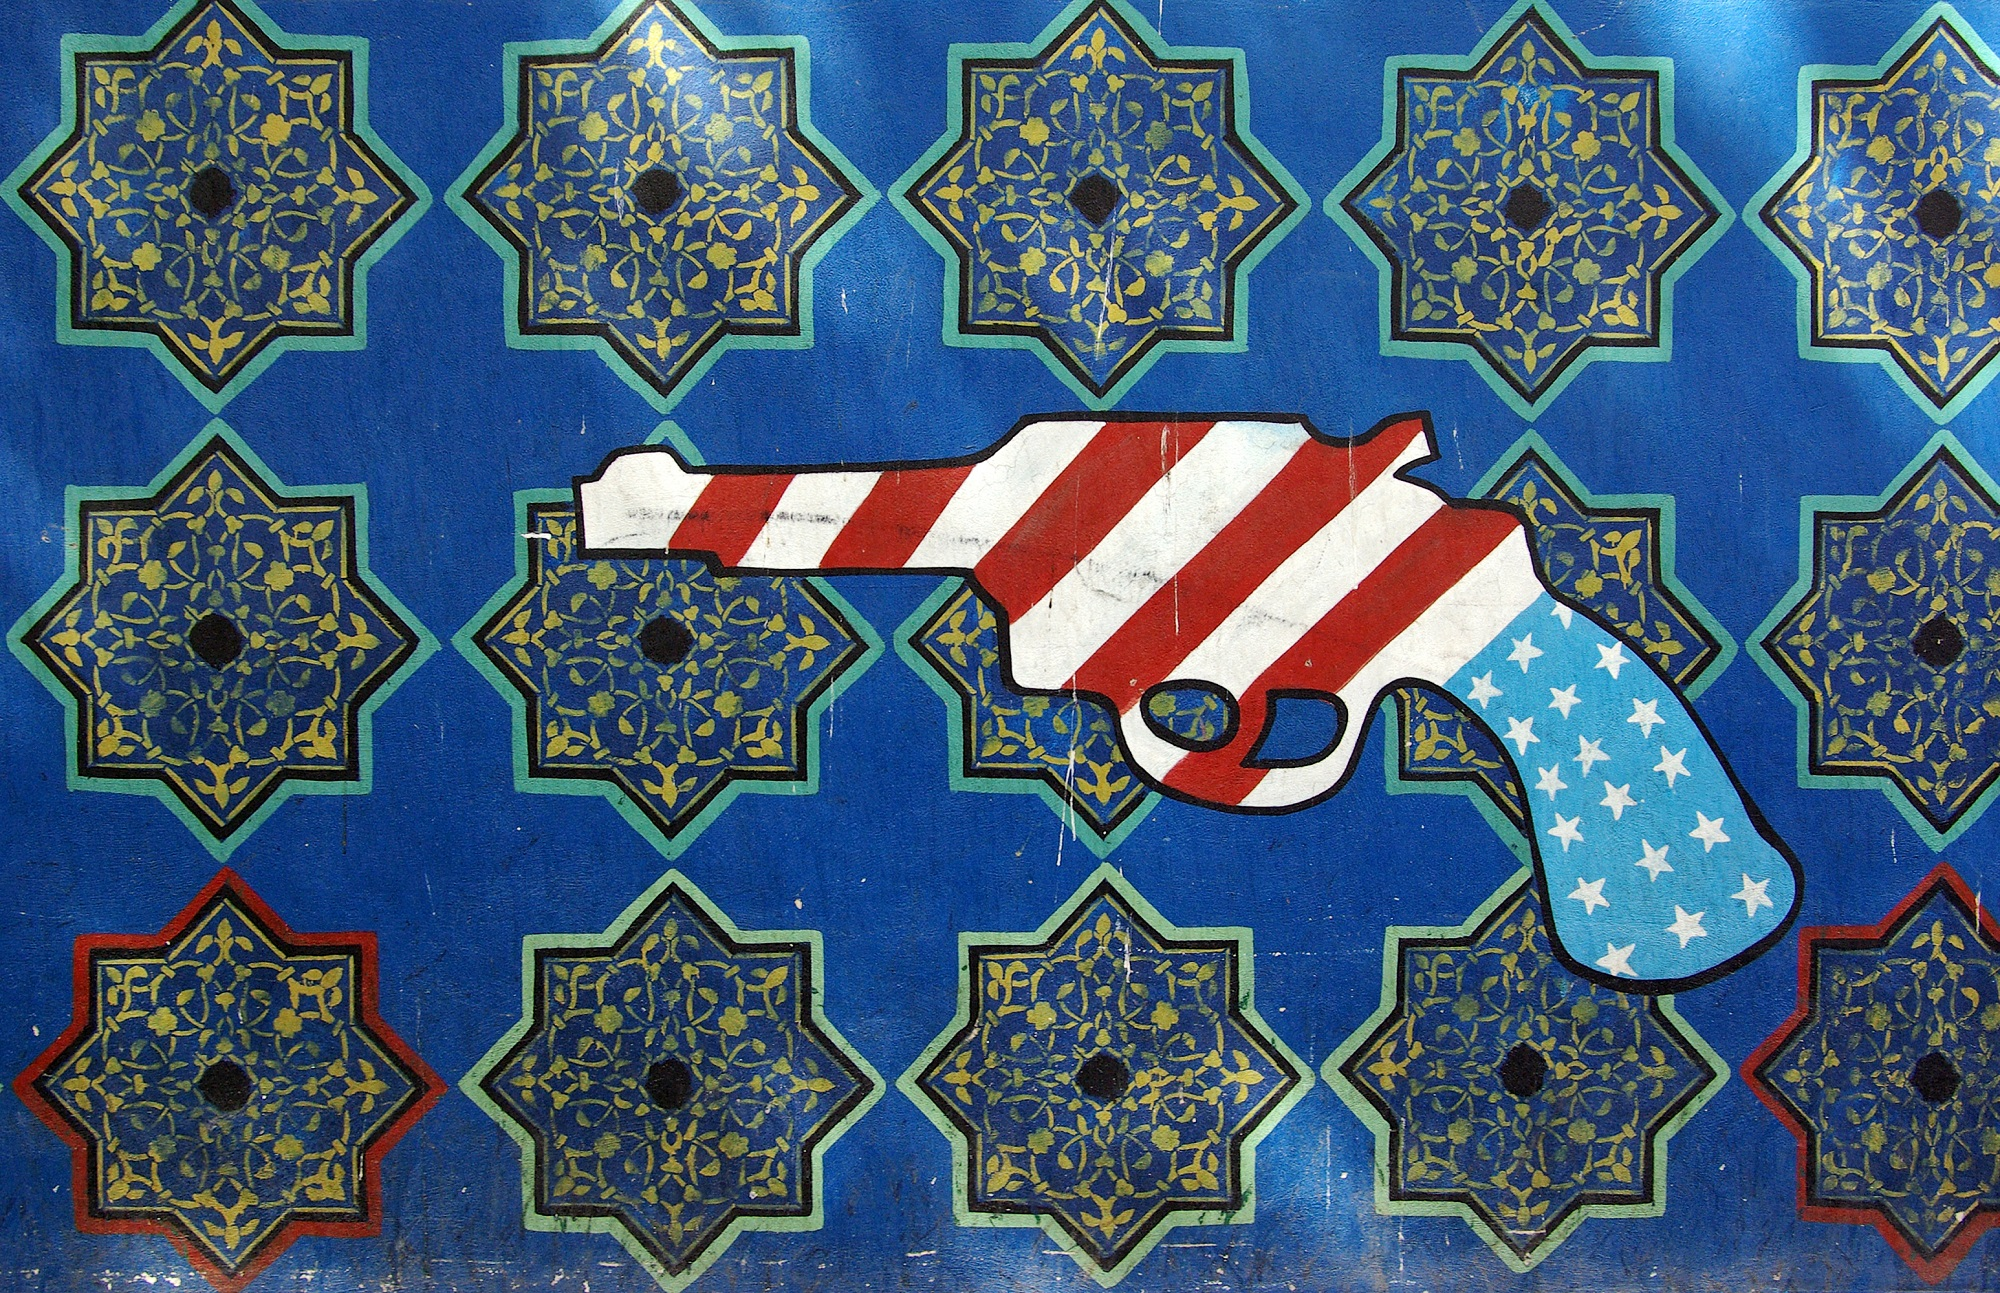 """Teheran US embassy propaganda gun by Phillip Maiwald (Nikopol) via Wikimedia Commons (CC BY-SA 3.0)"